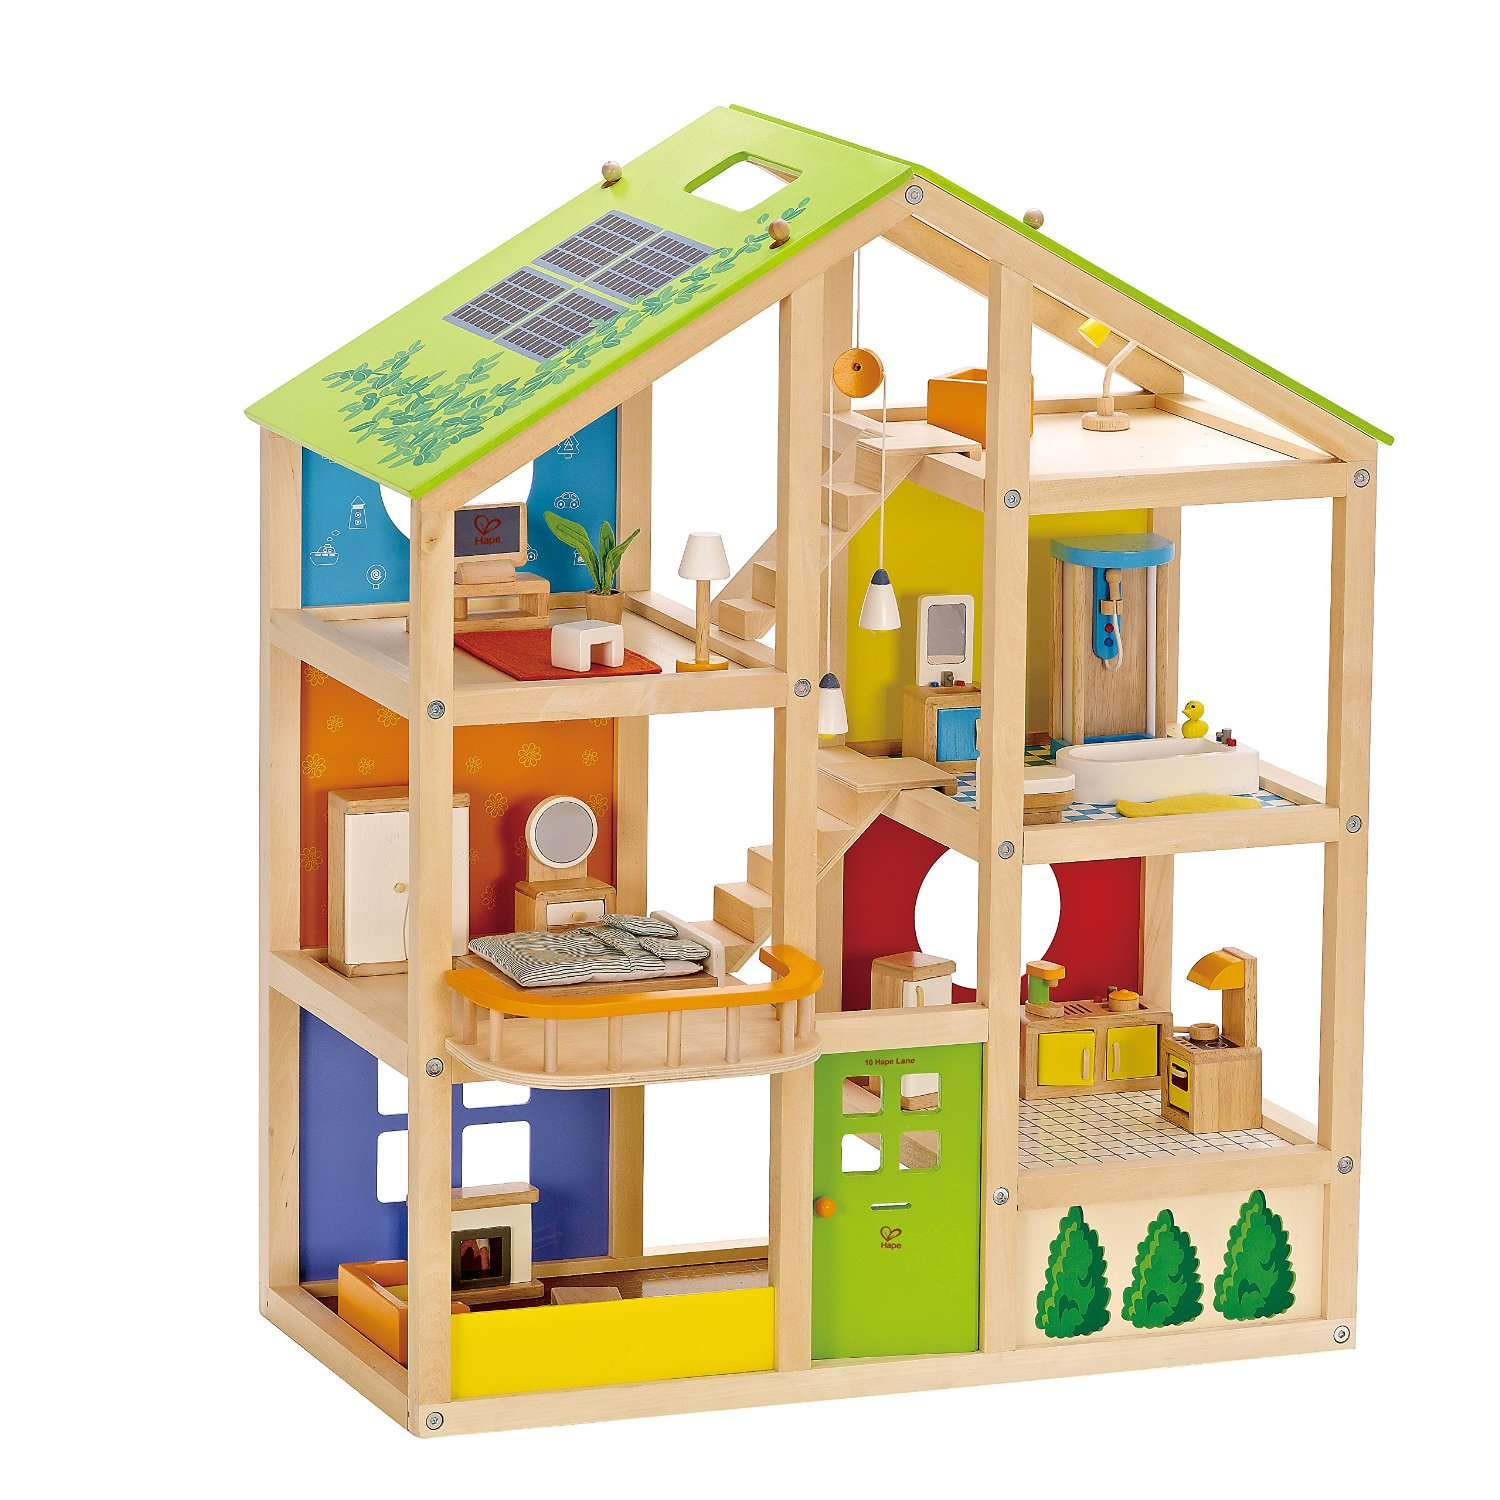 Hape all season dollhouse